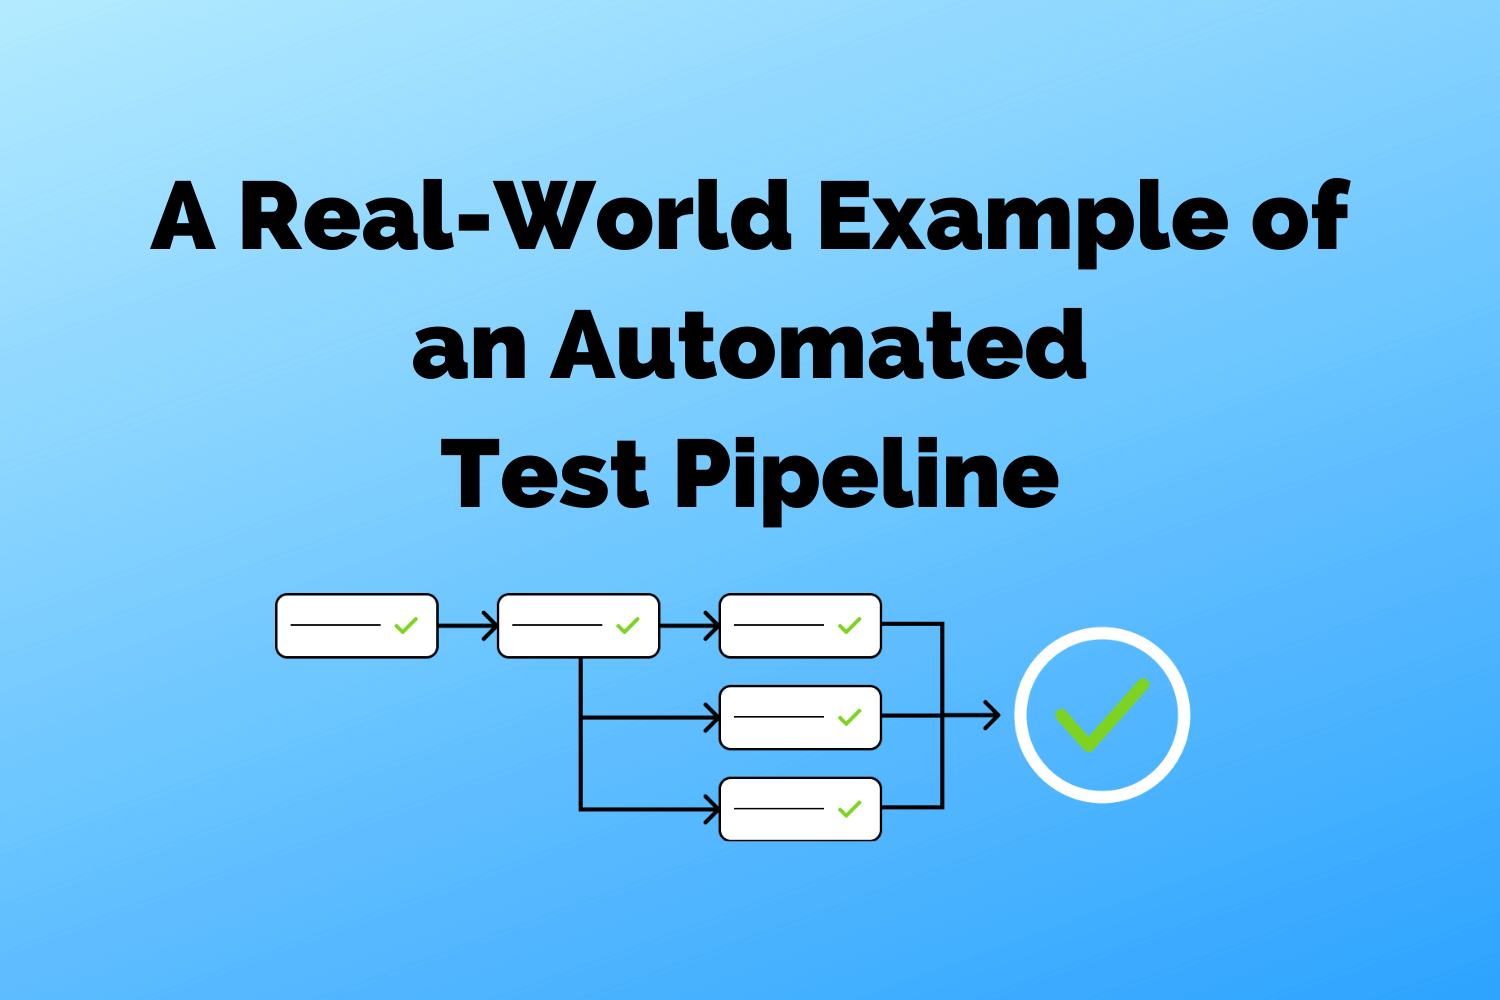 A Real-World Example of an Automated Test Pipeline